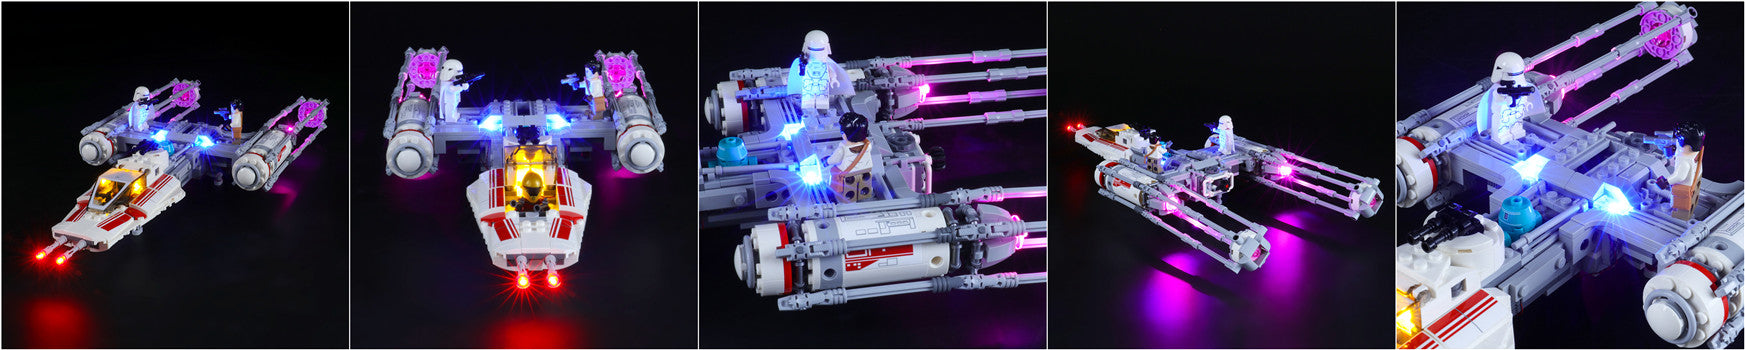 light up lego resistance y wing